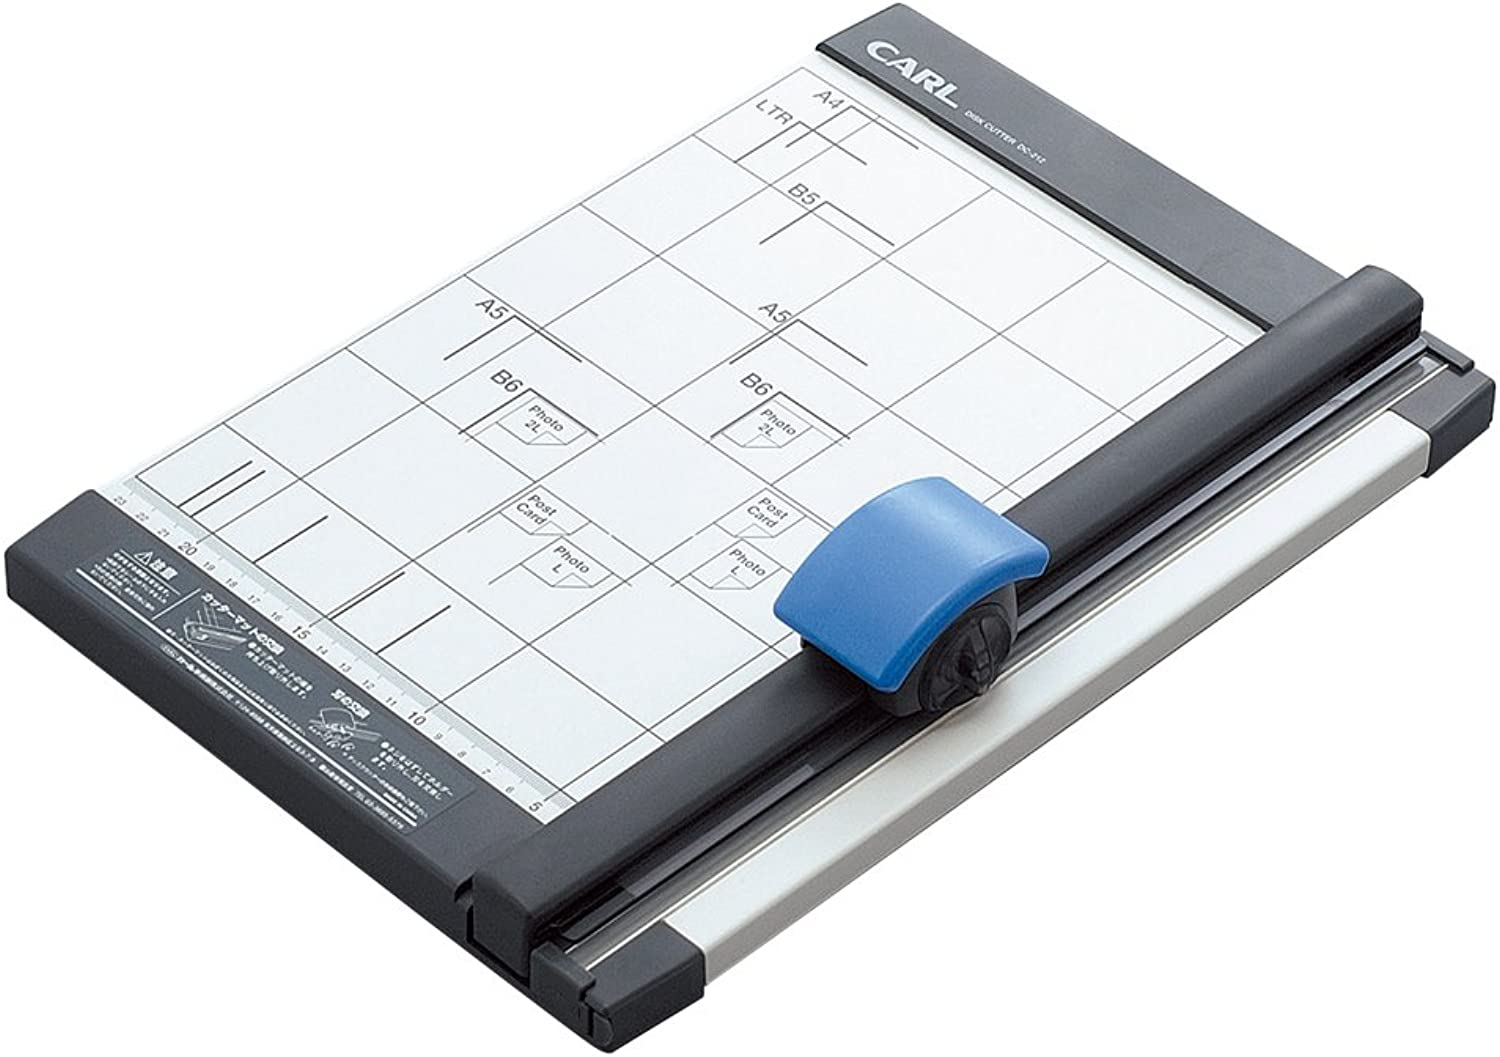 CARL DC-212 Rollenschneider  Rotary Trimmer (A4, (A4, (A4, 10sheets Straight; 3sheets Wave Pattern) B002UKPAG2   | Clearance Sale  937275